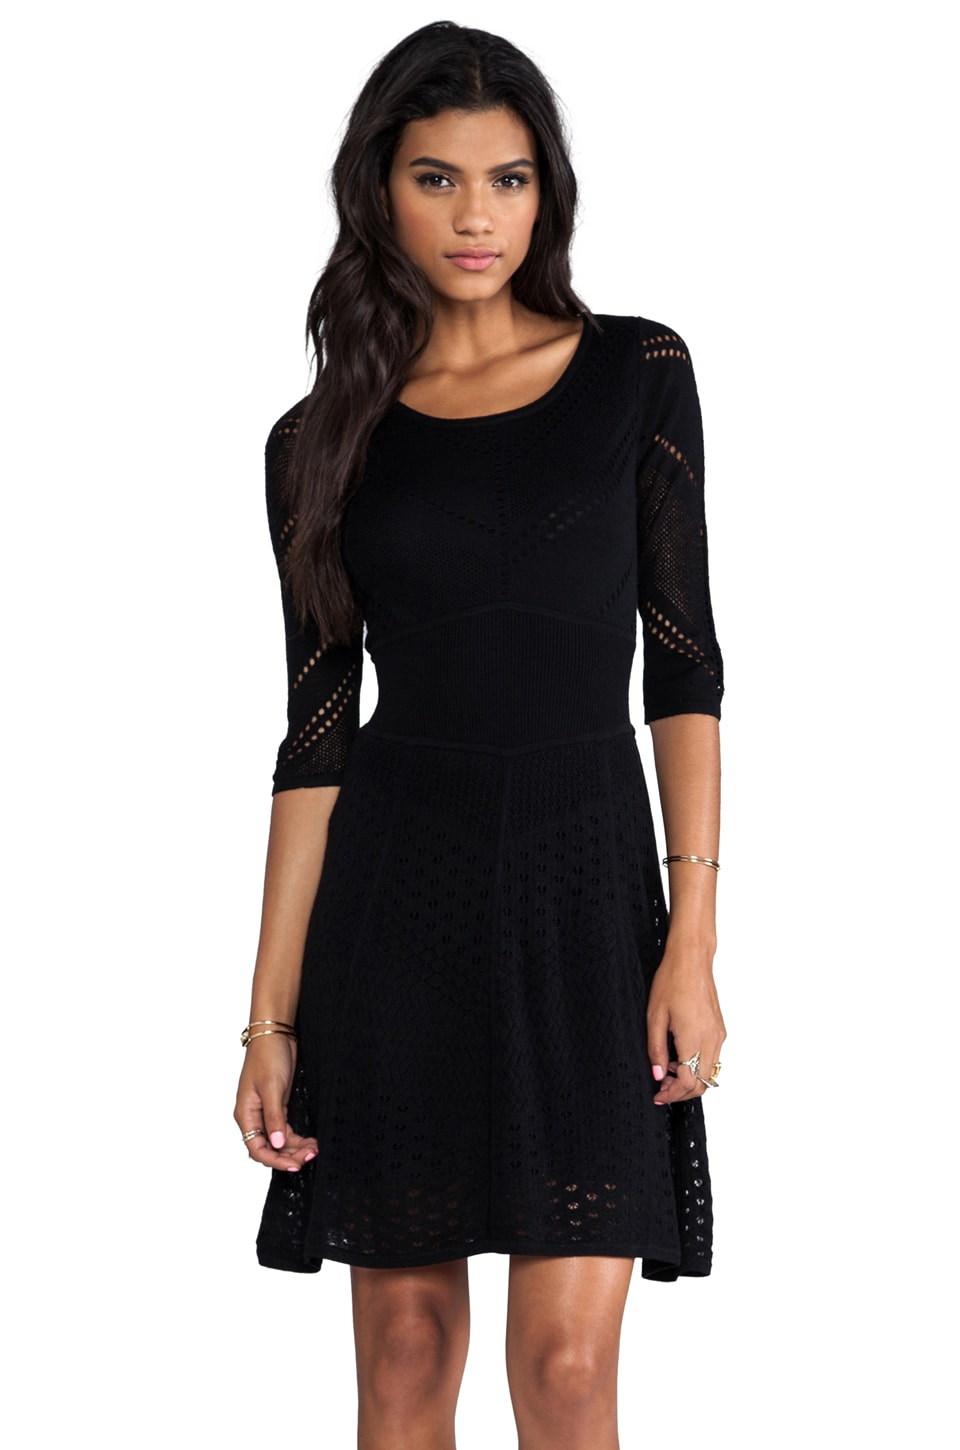 Catherine Malandrino Favorites 3/4 Sleeve Mixed Pointelle Dress in Noir